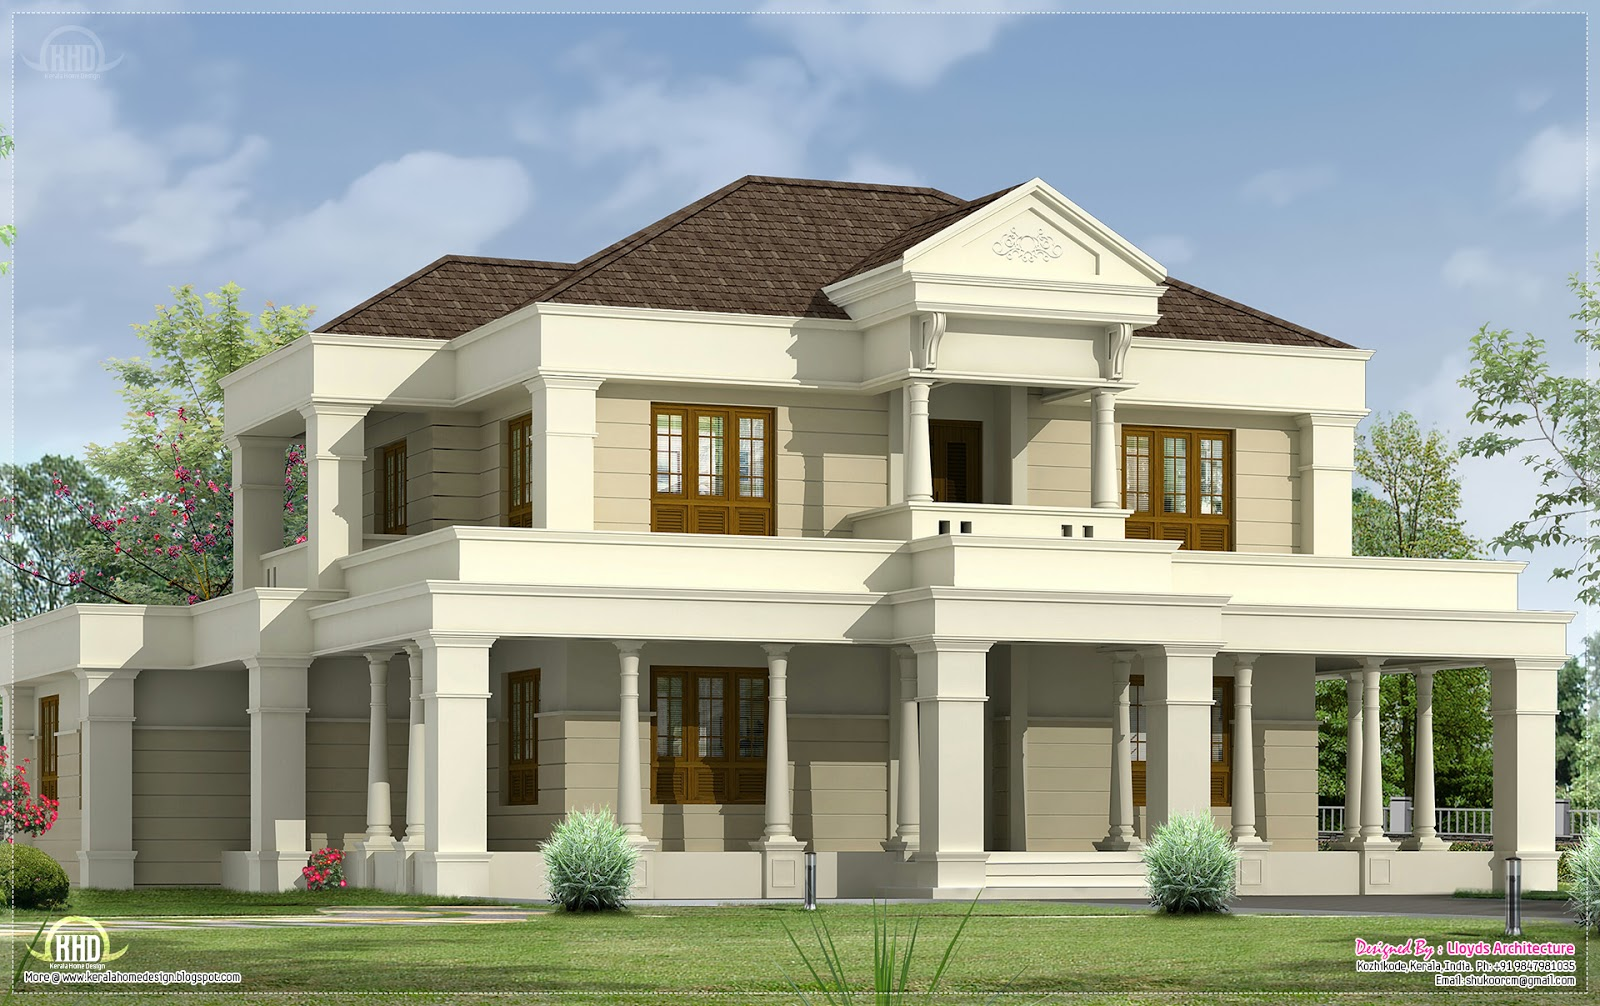 5 bedroom luxurious villa exterior design home kerala plans for Villa style homes